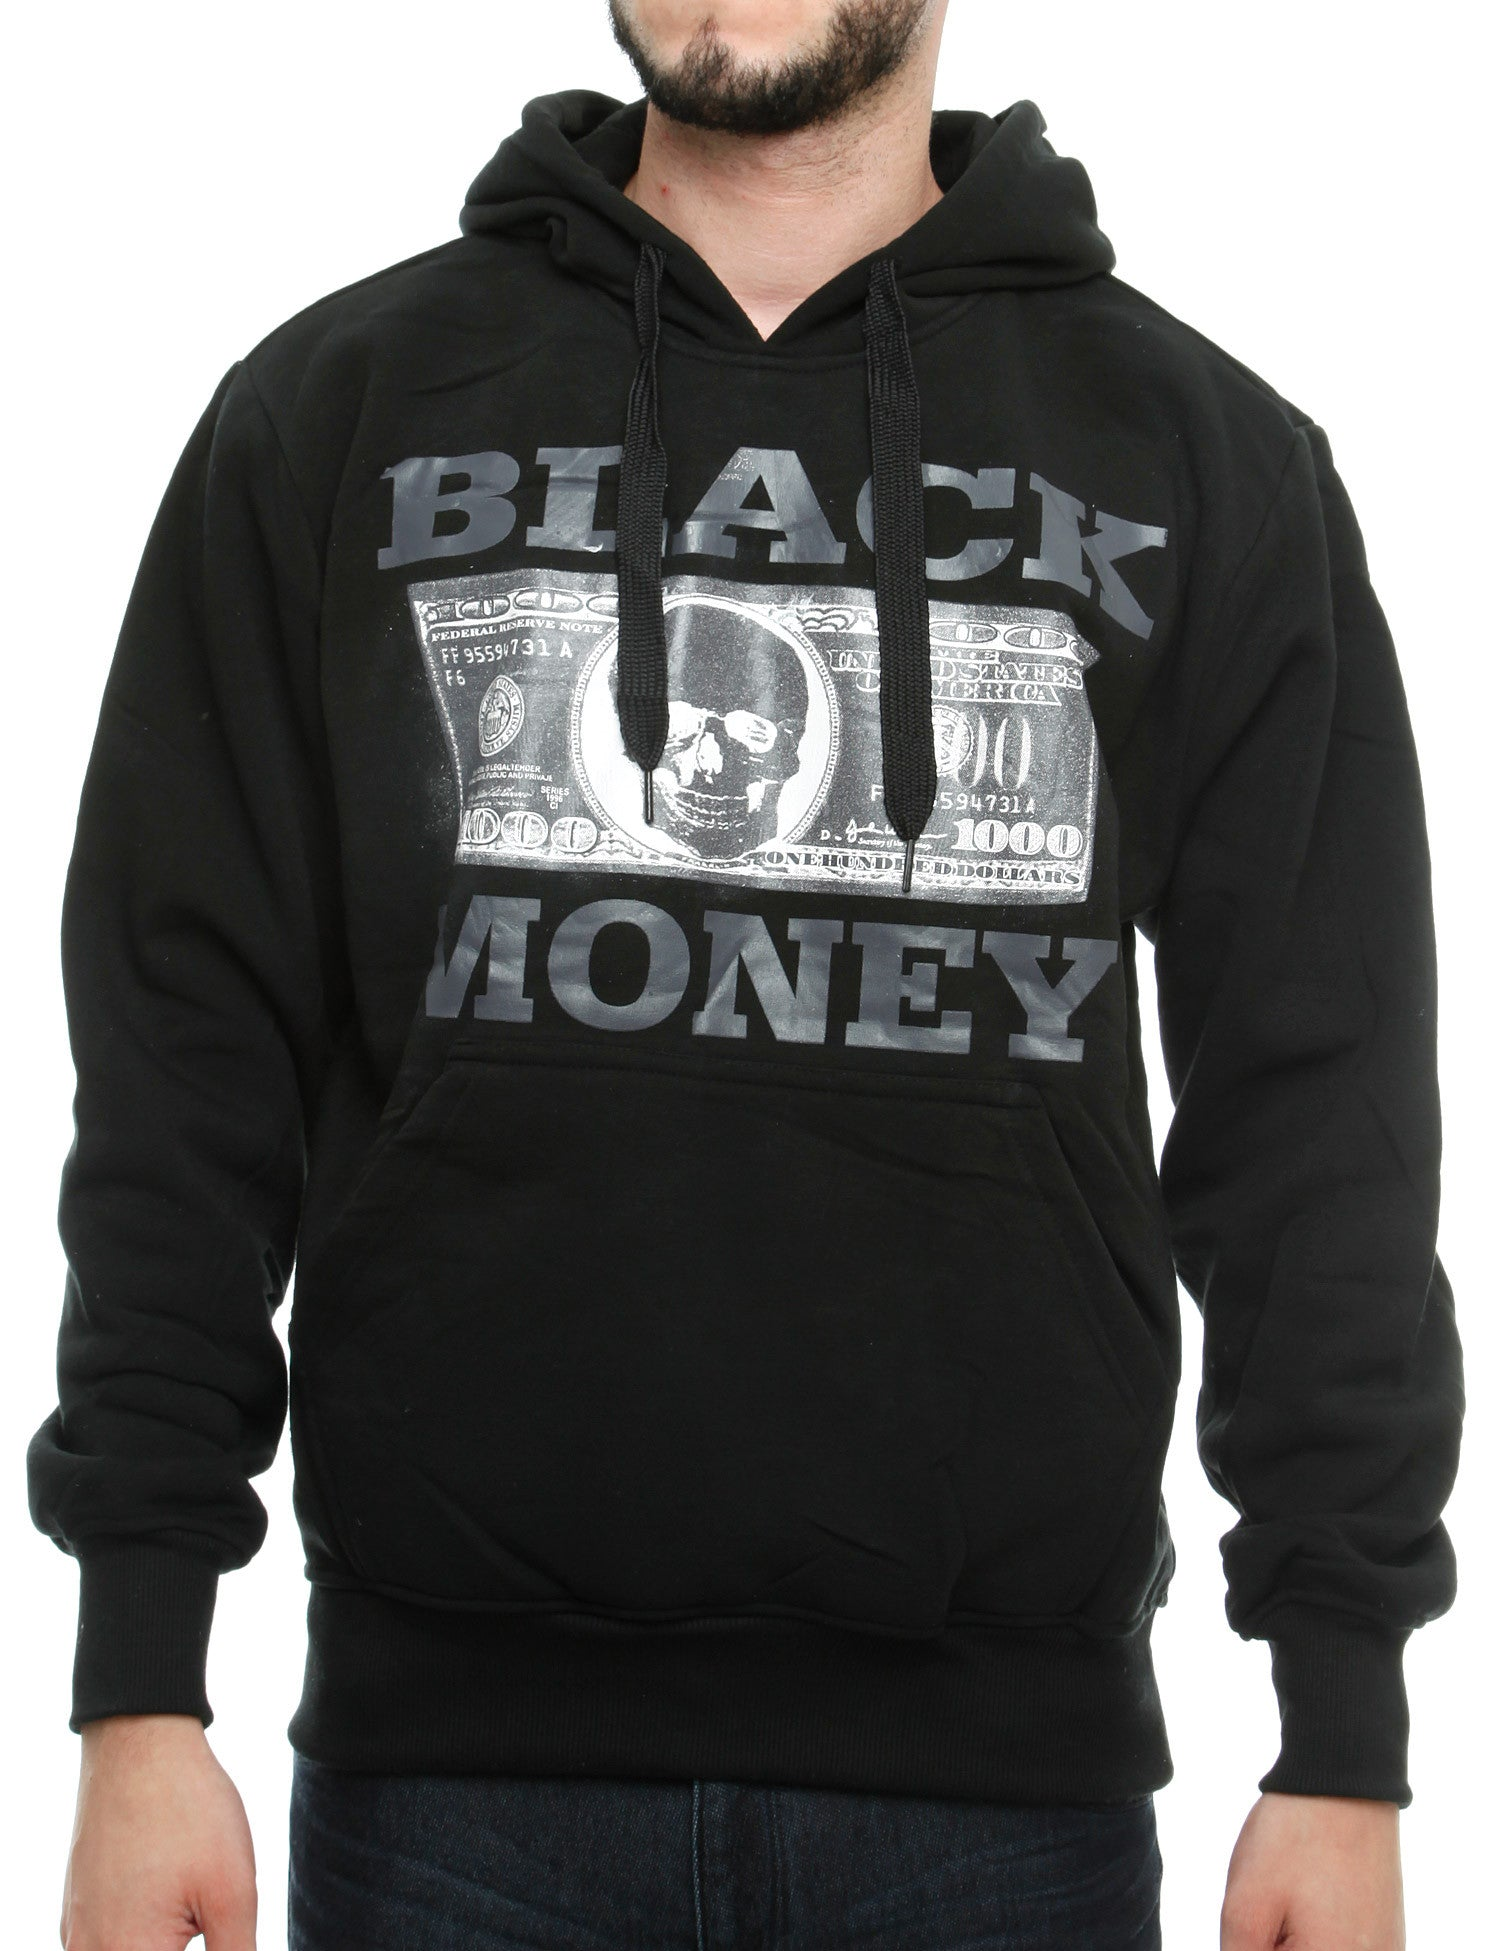 Korex Black Money Hoody K2 Black